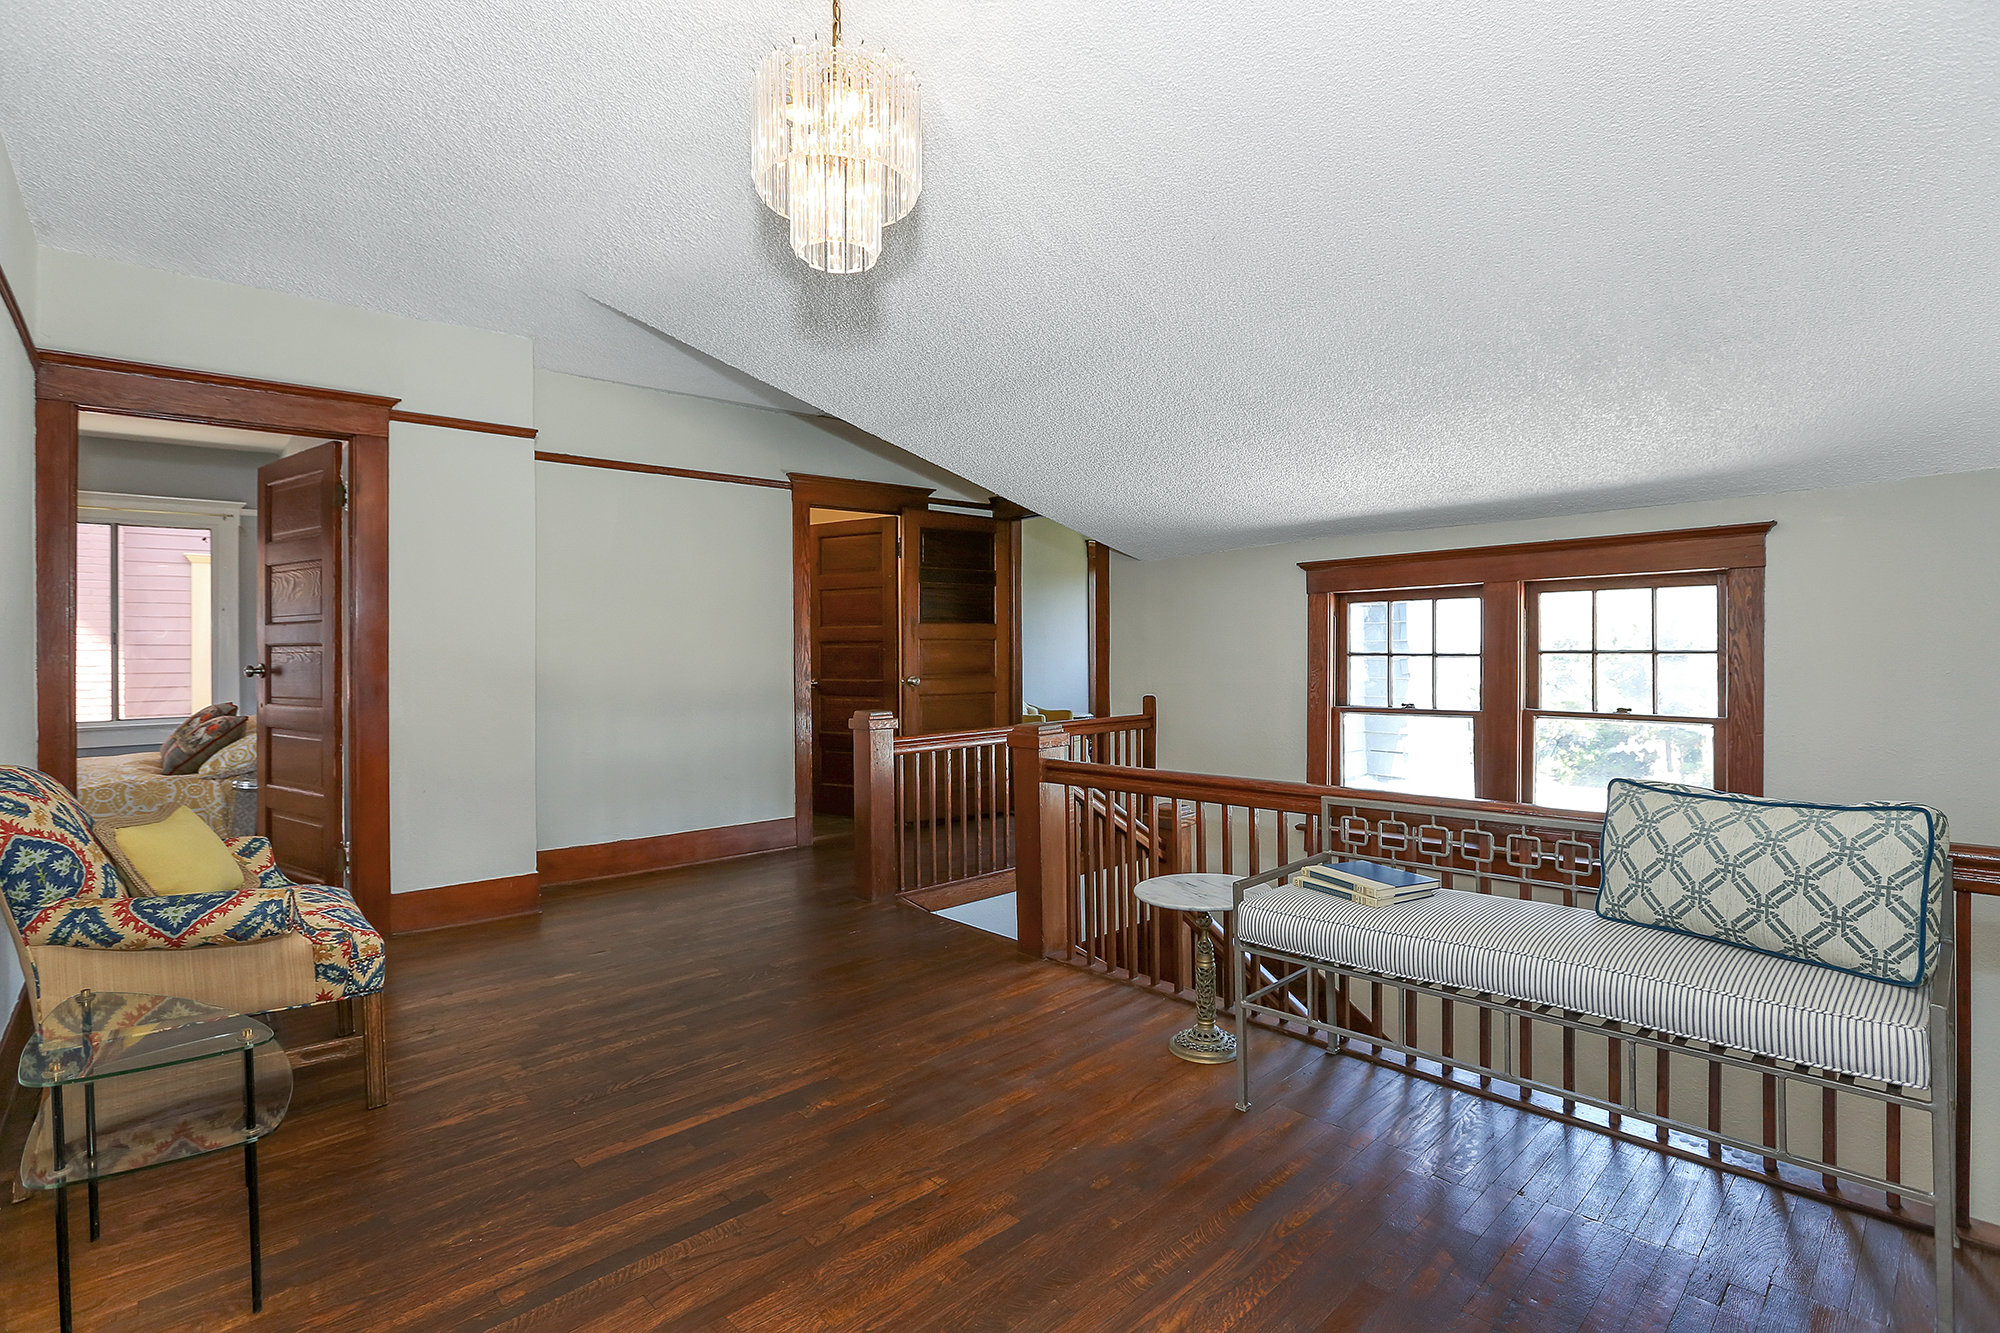 The upstairs landing is surrounded by five bedrooms and a common bathroom.